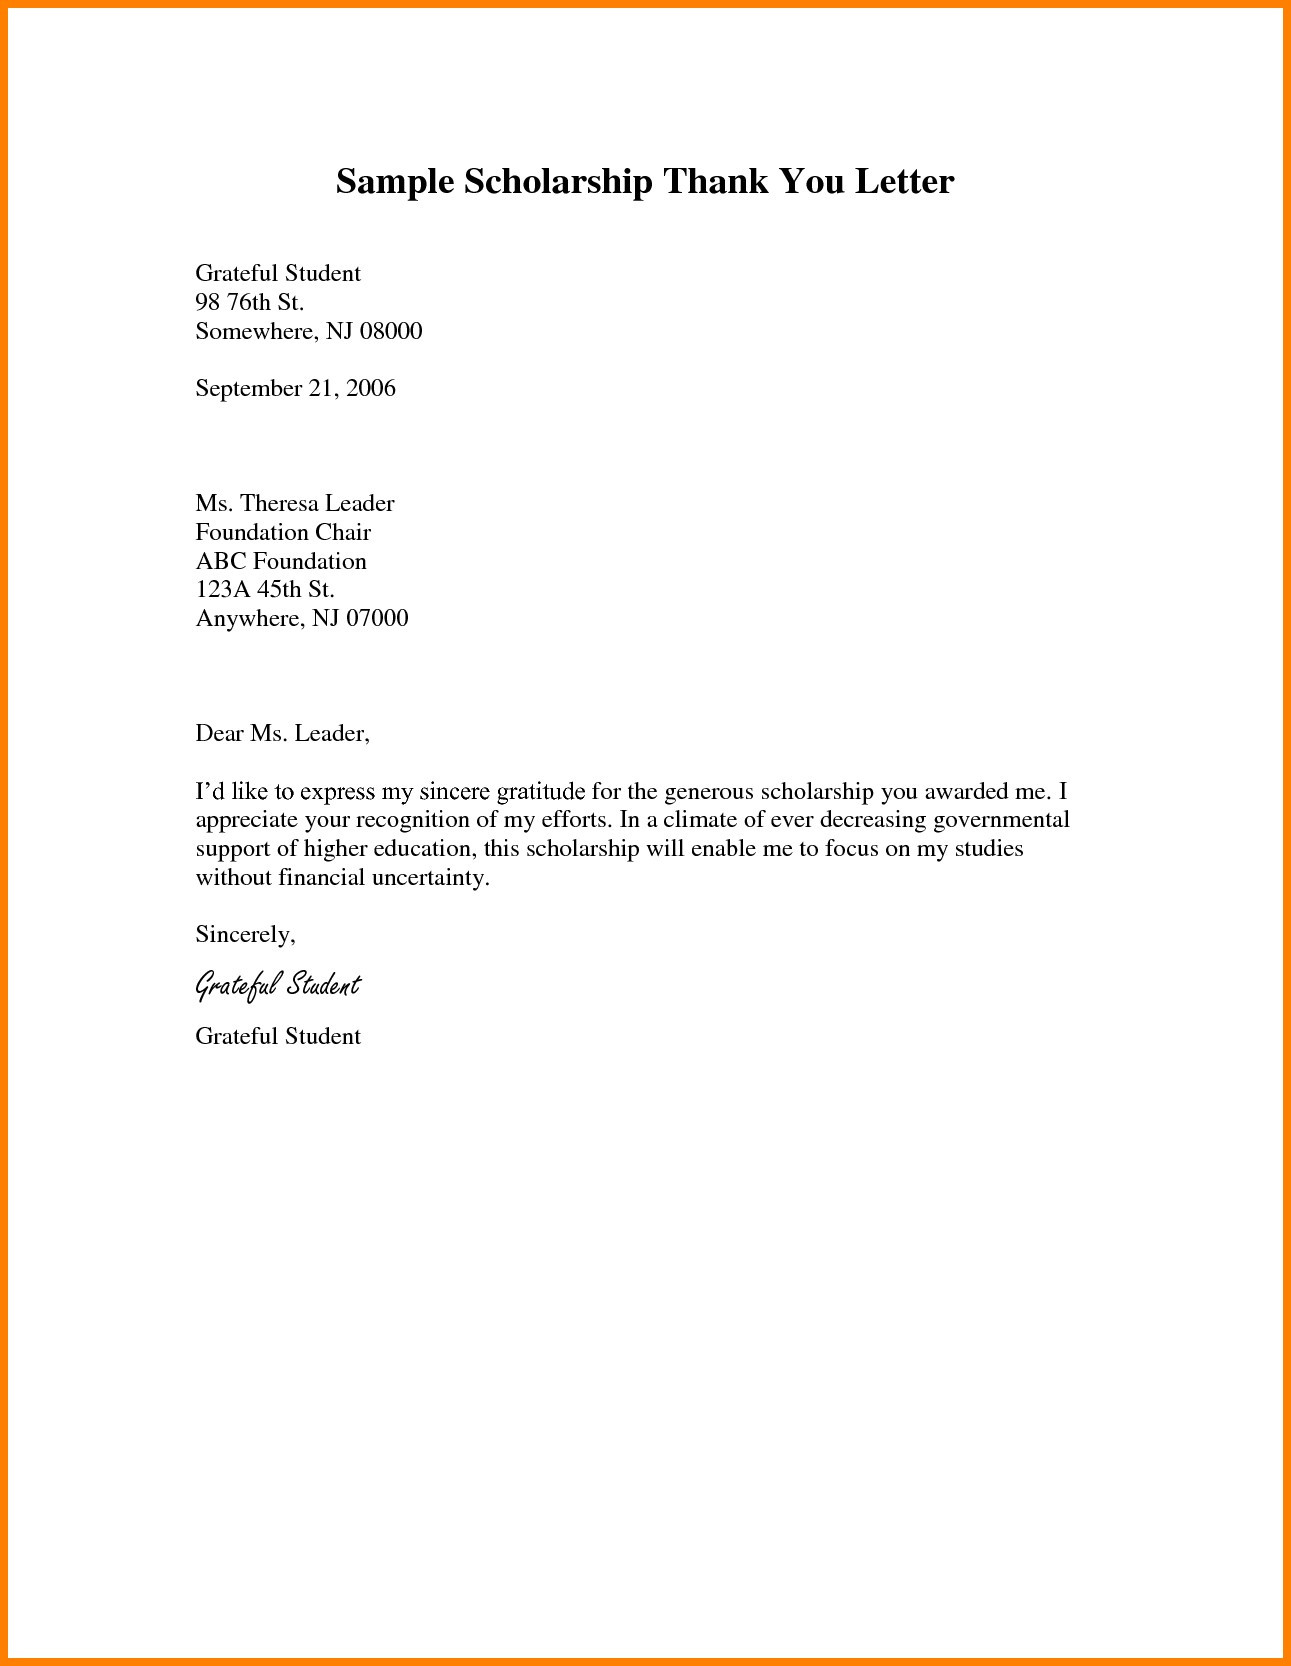 Scholarship Thank You Letter Template - Sample Appreciation Letter to Employee for Hard Work Luxury